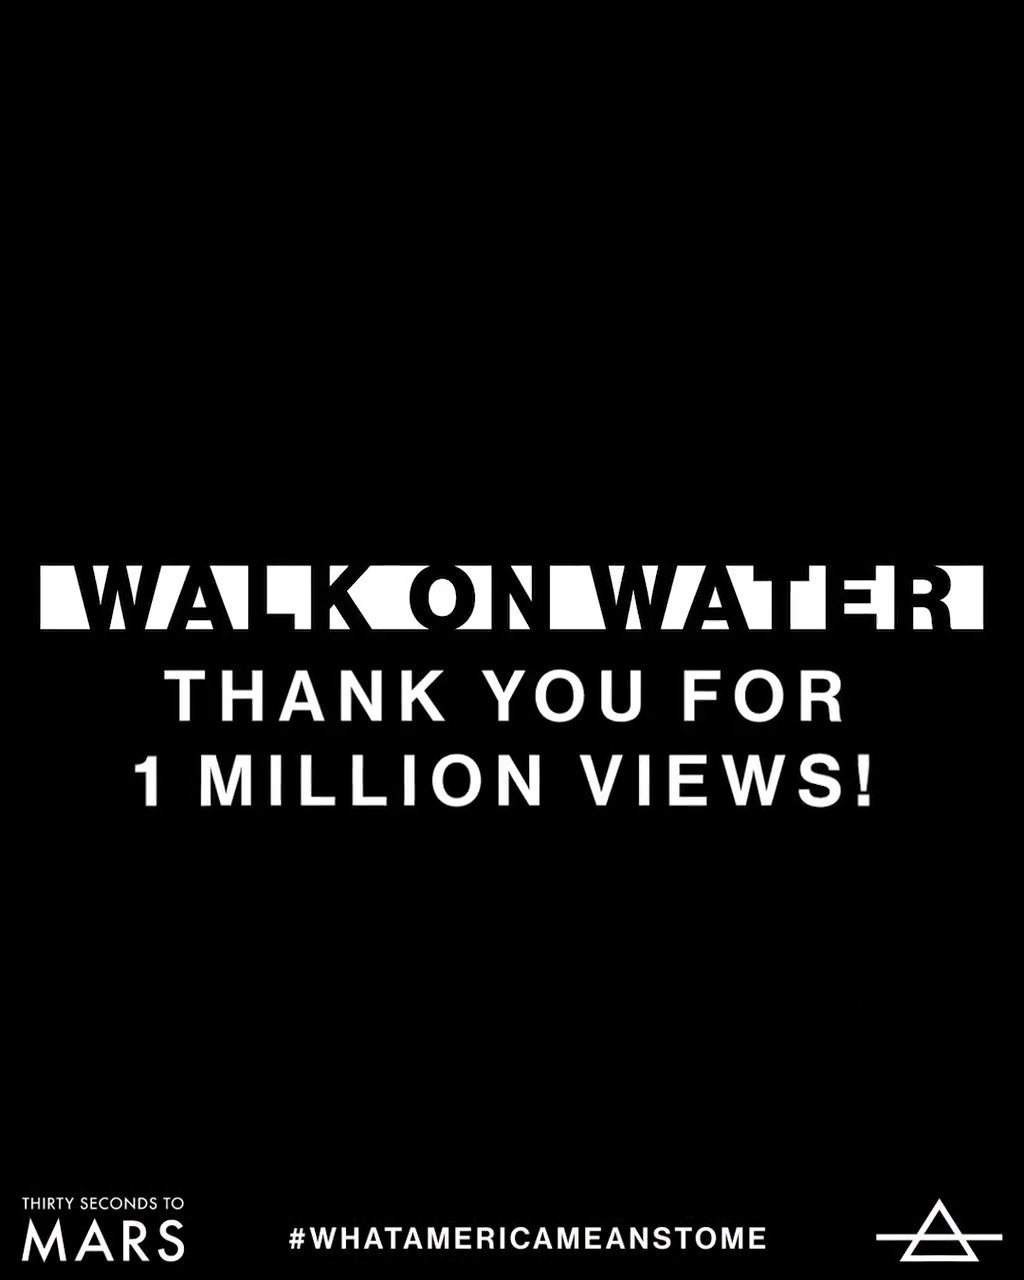 Thank you. ⨺ #WalkOnWater #1Million https://t.co/6RlIrrO2J0